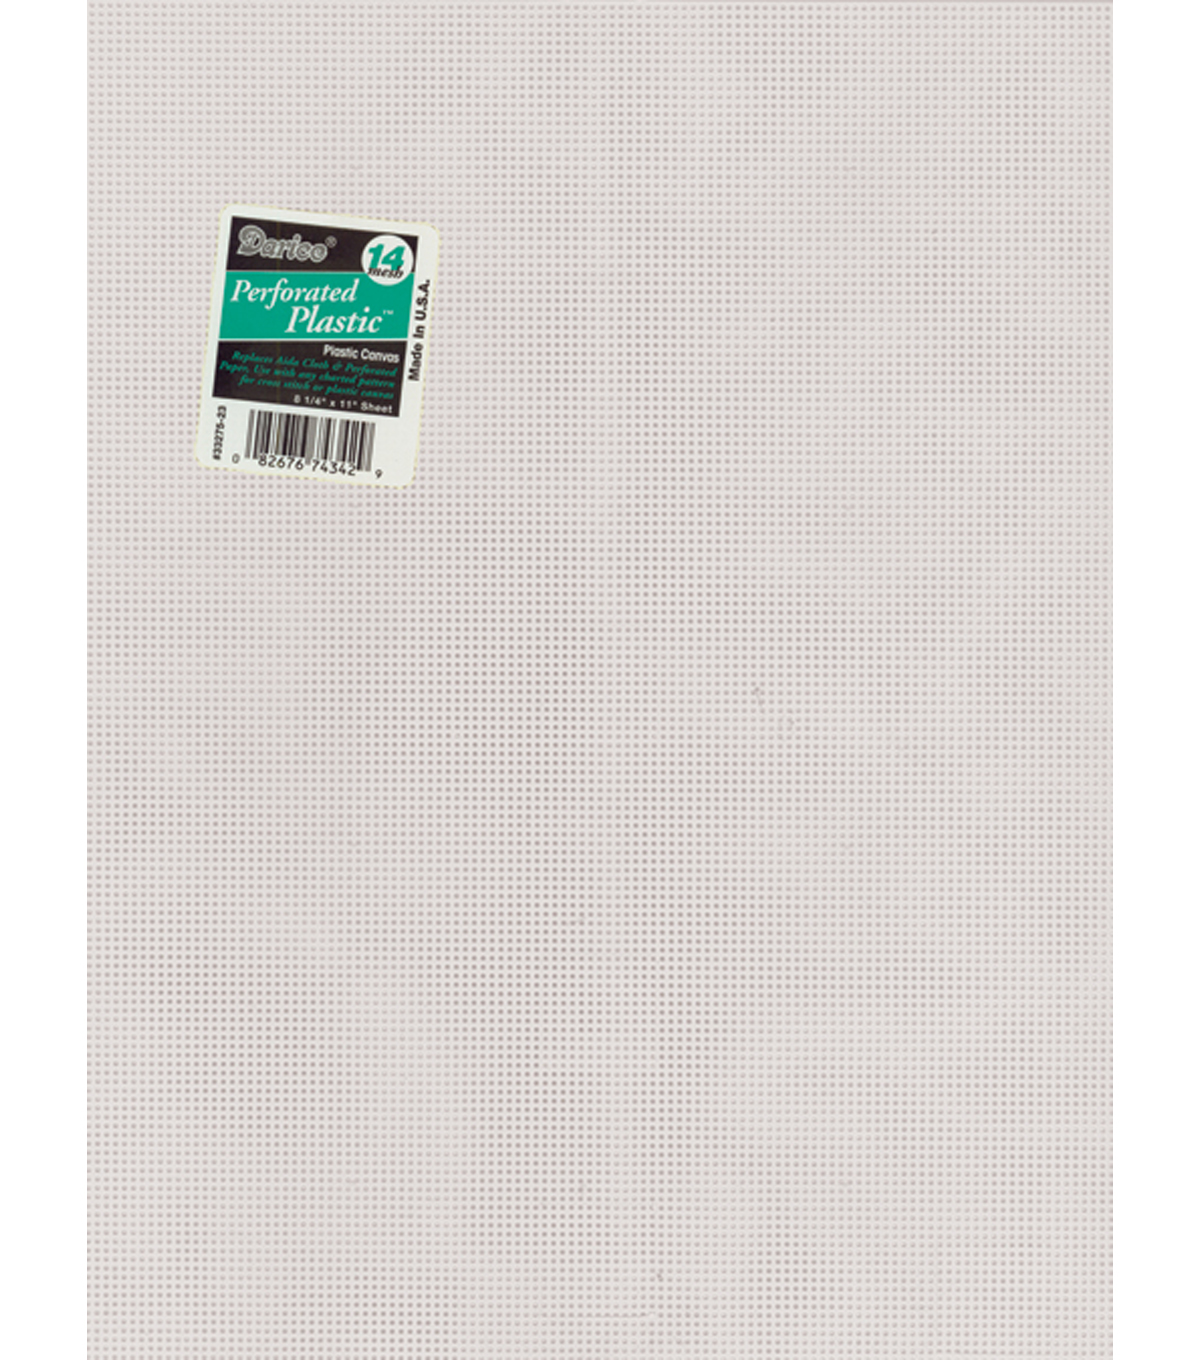 Perforated Plastic Canvas 14 Count 8.5\u0022X11\u0022-White